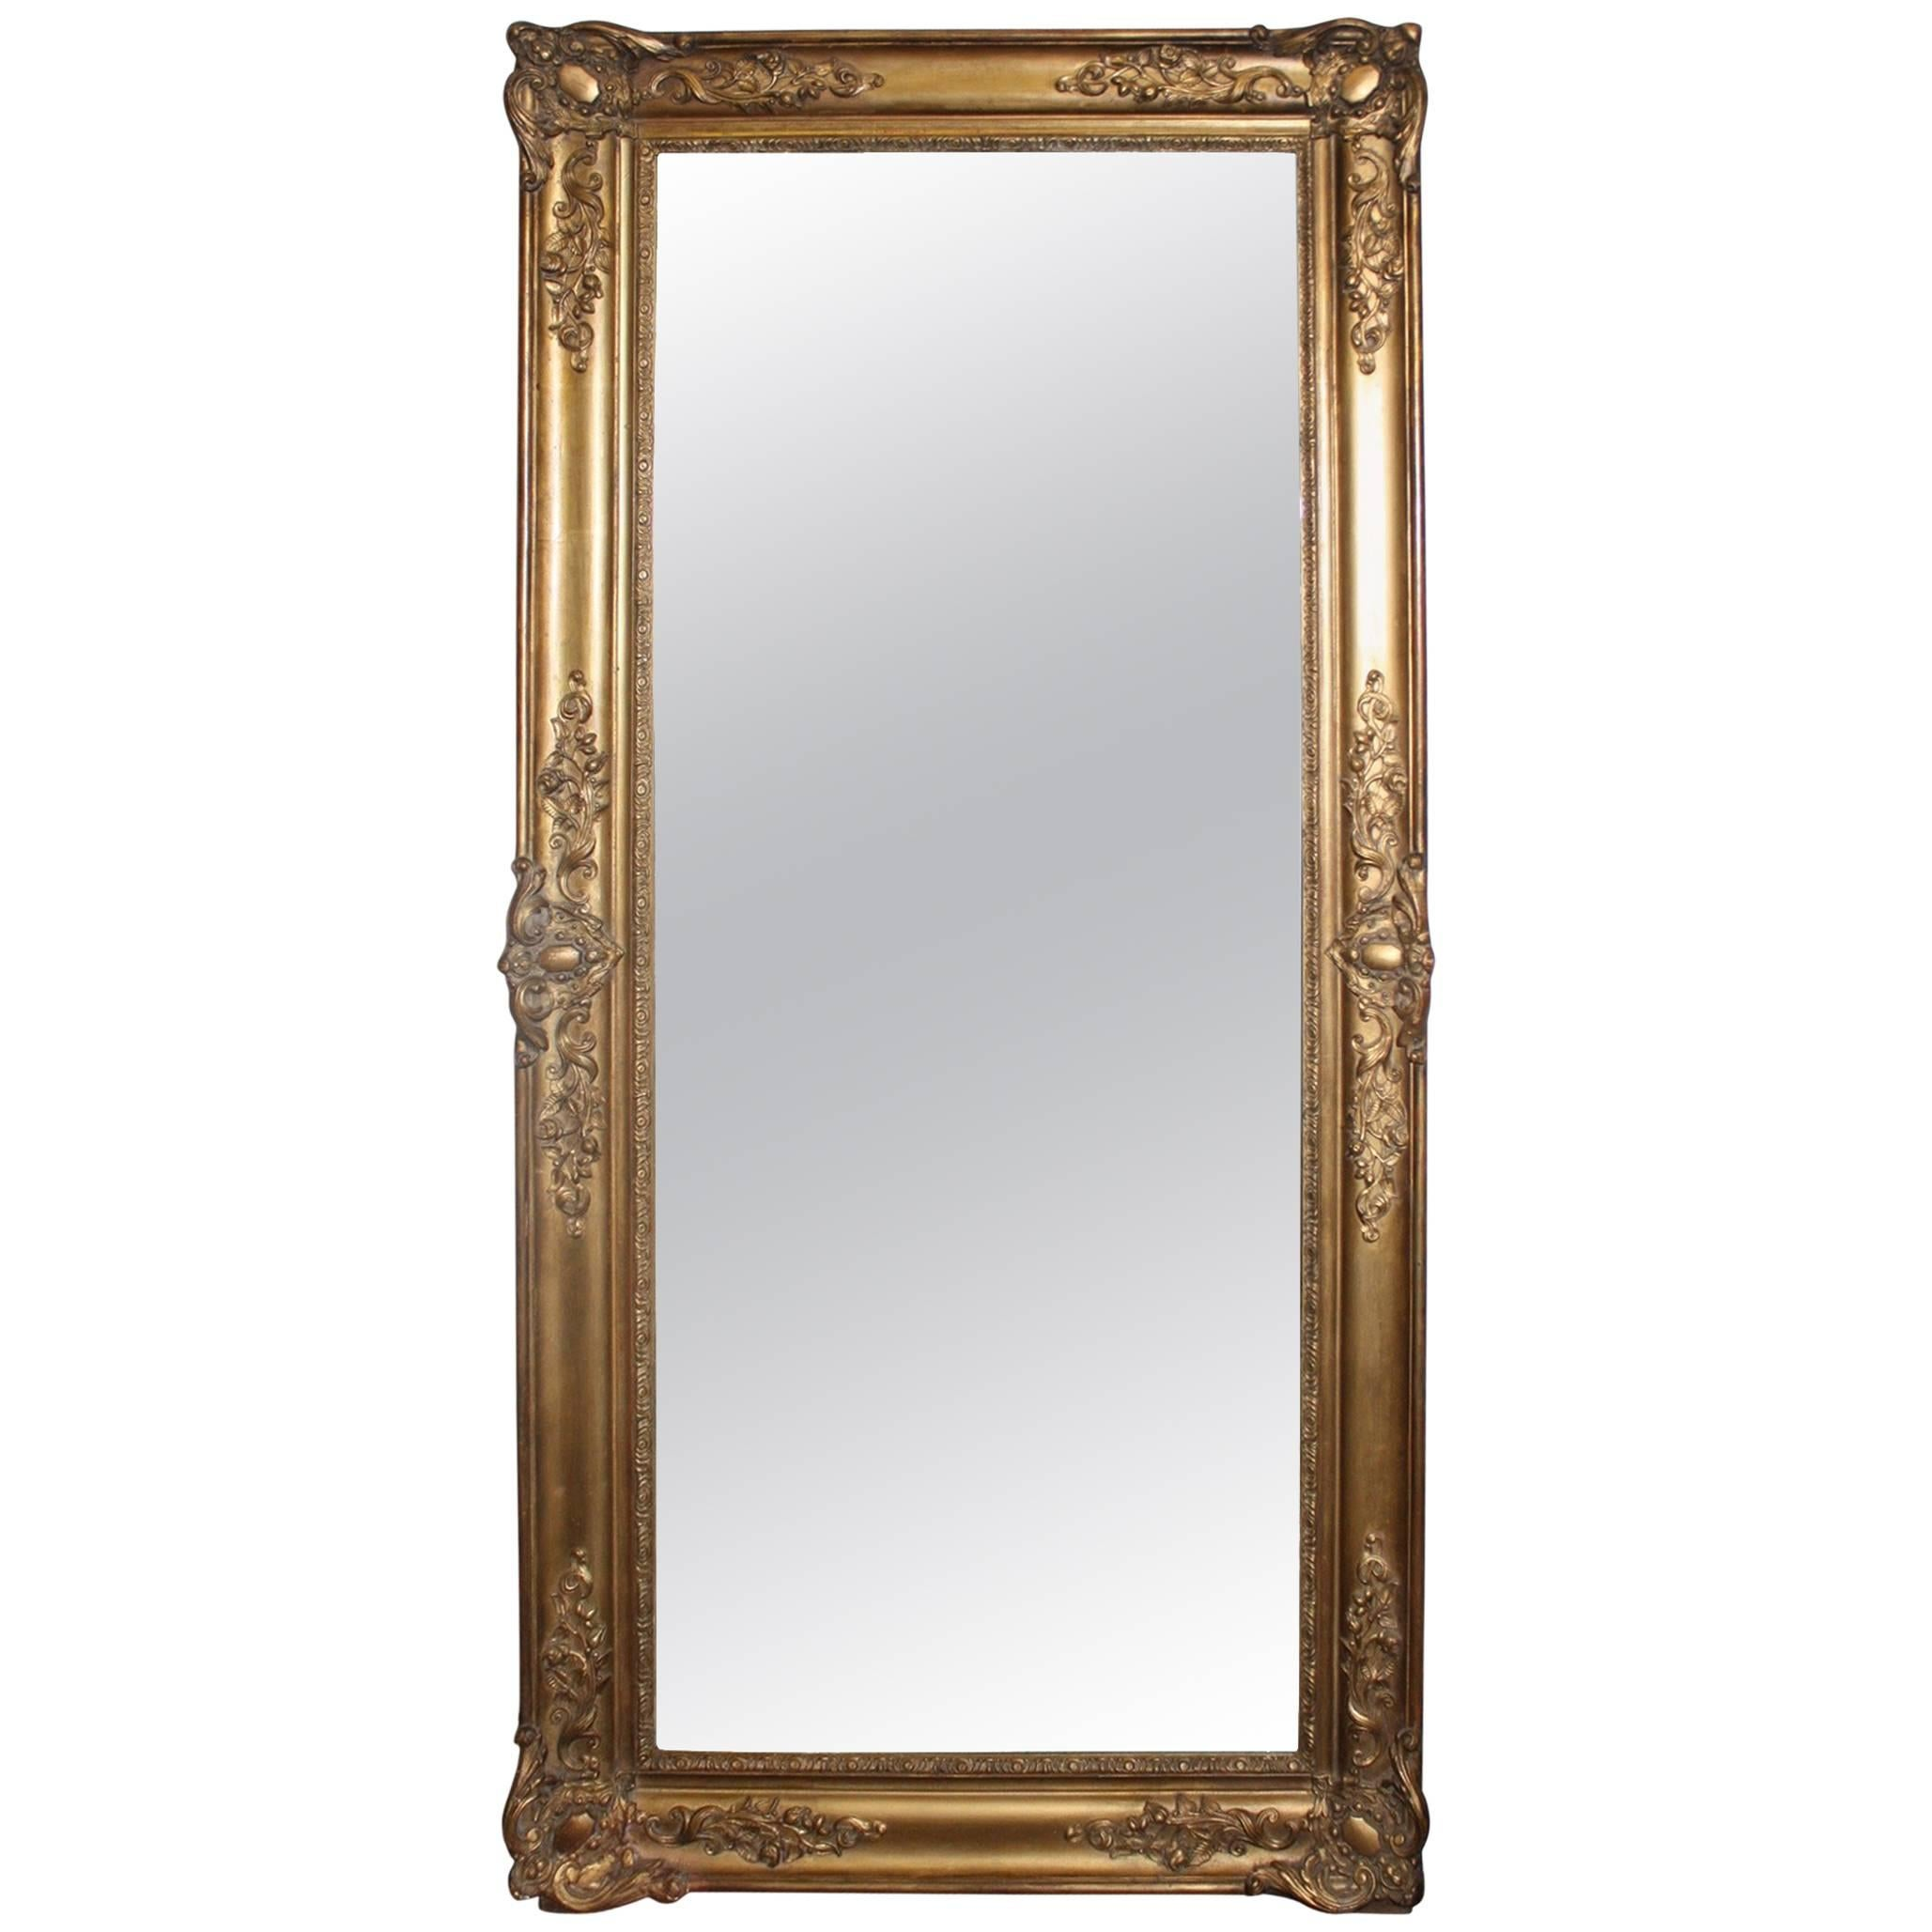 Charming 19th Century French Mirror